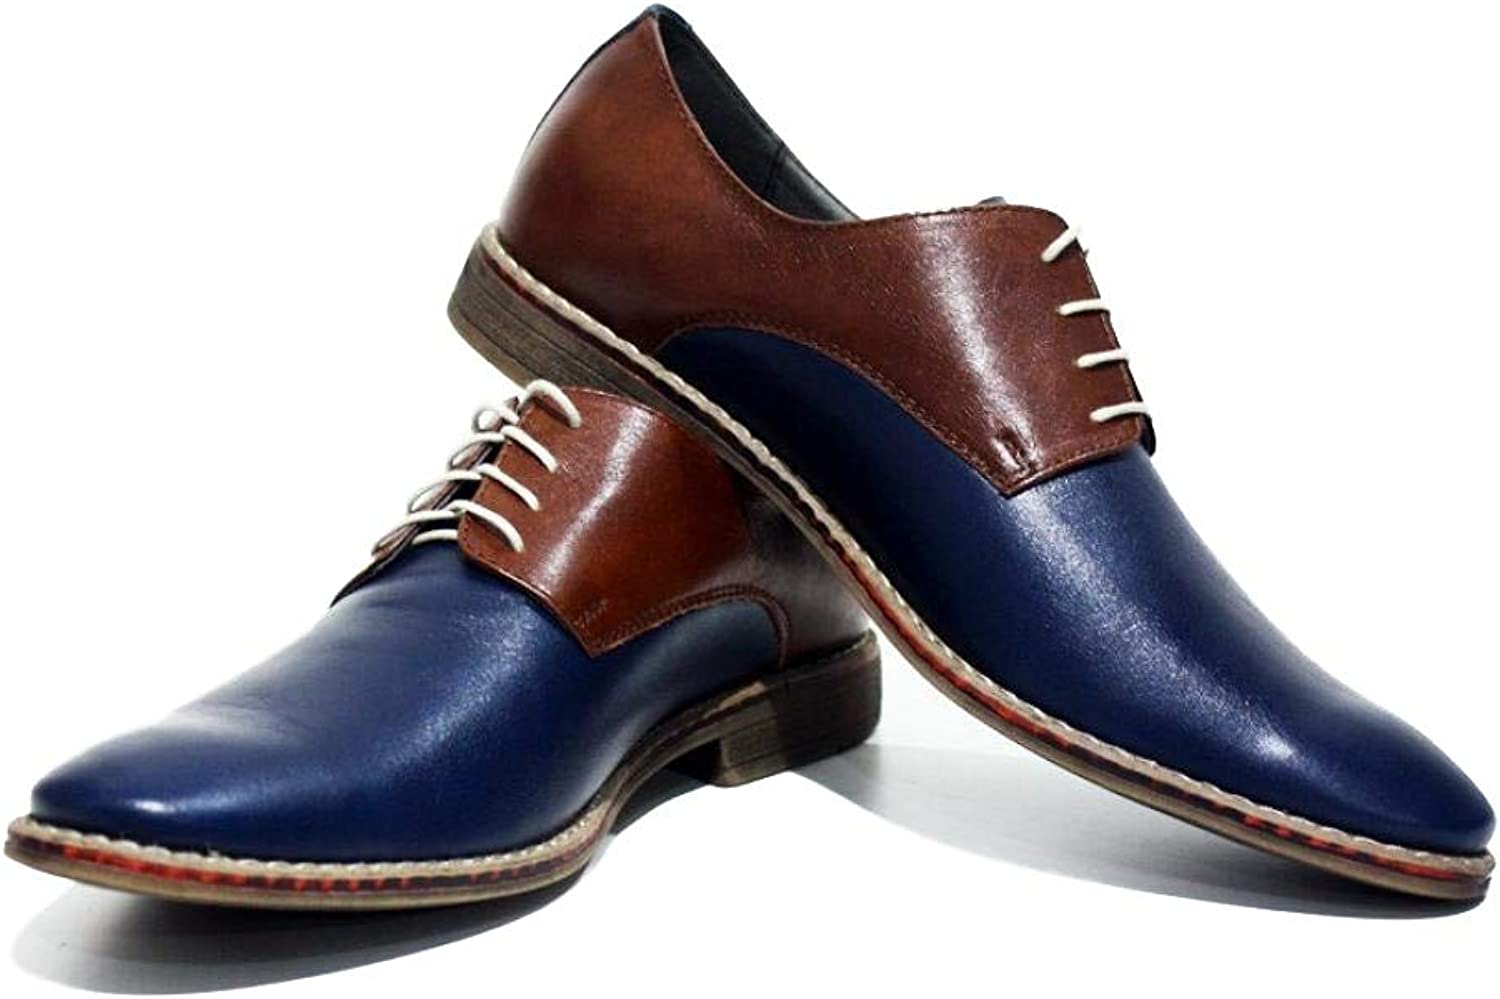 Modello Acireale - Handmade Italian Leather Mens color Navy bluee Oxfords Dress shoes - Cowhide Smooth Leather - Lace-Up